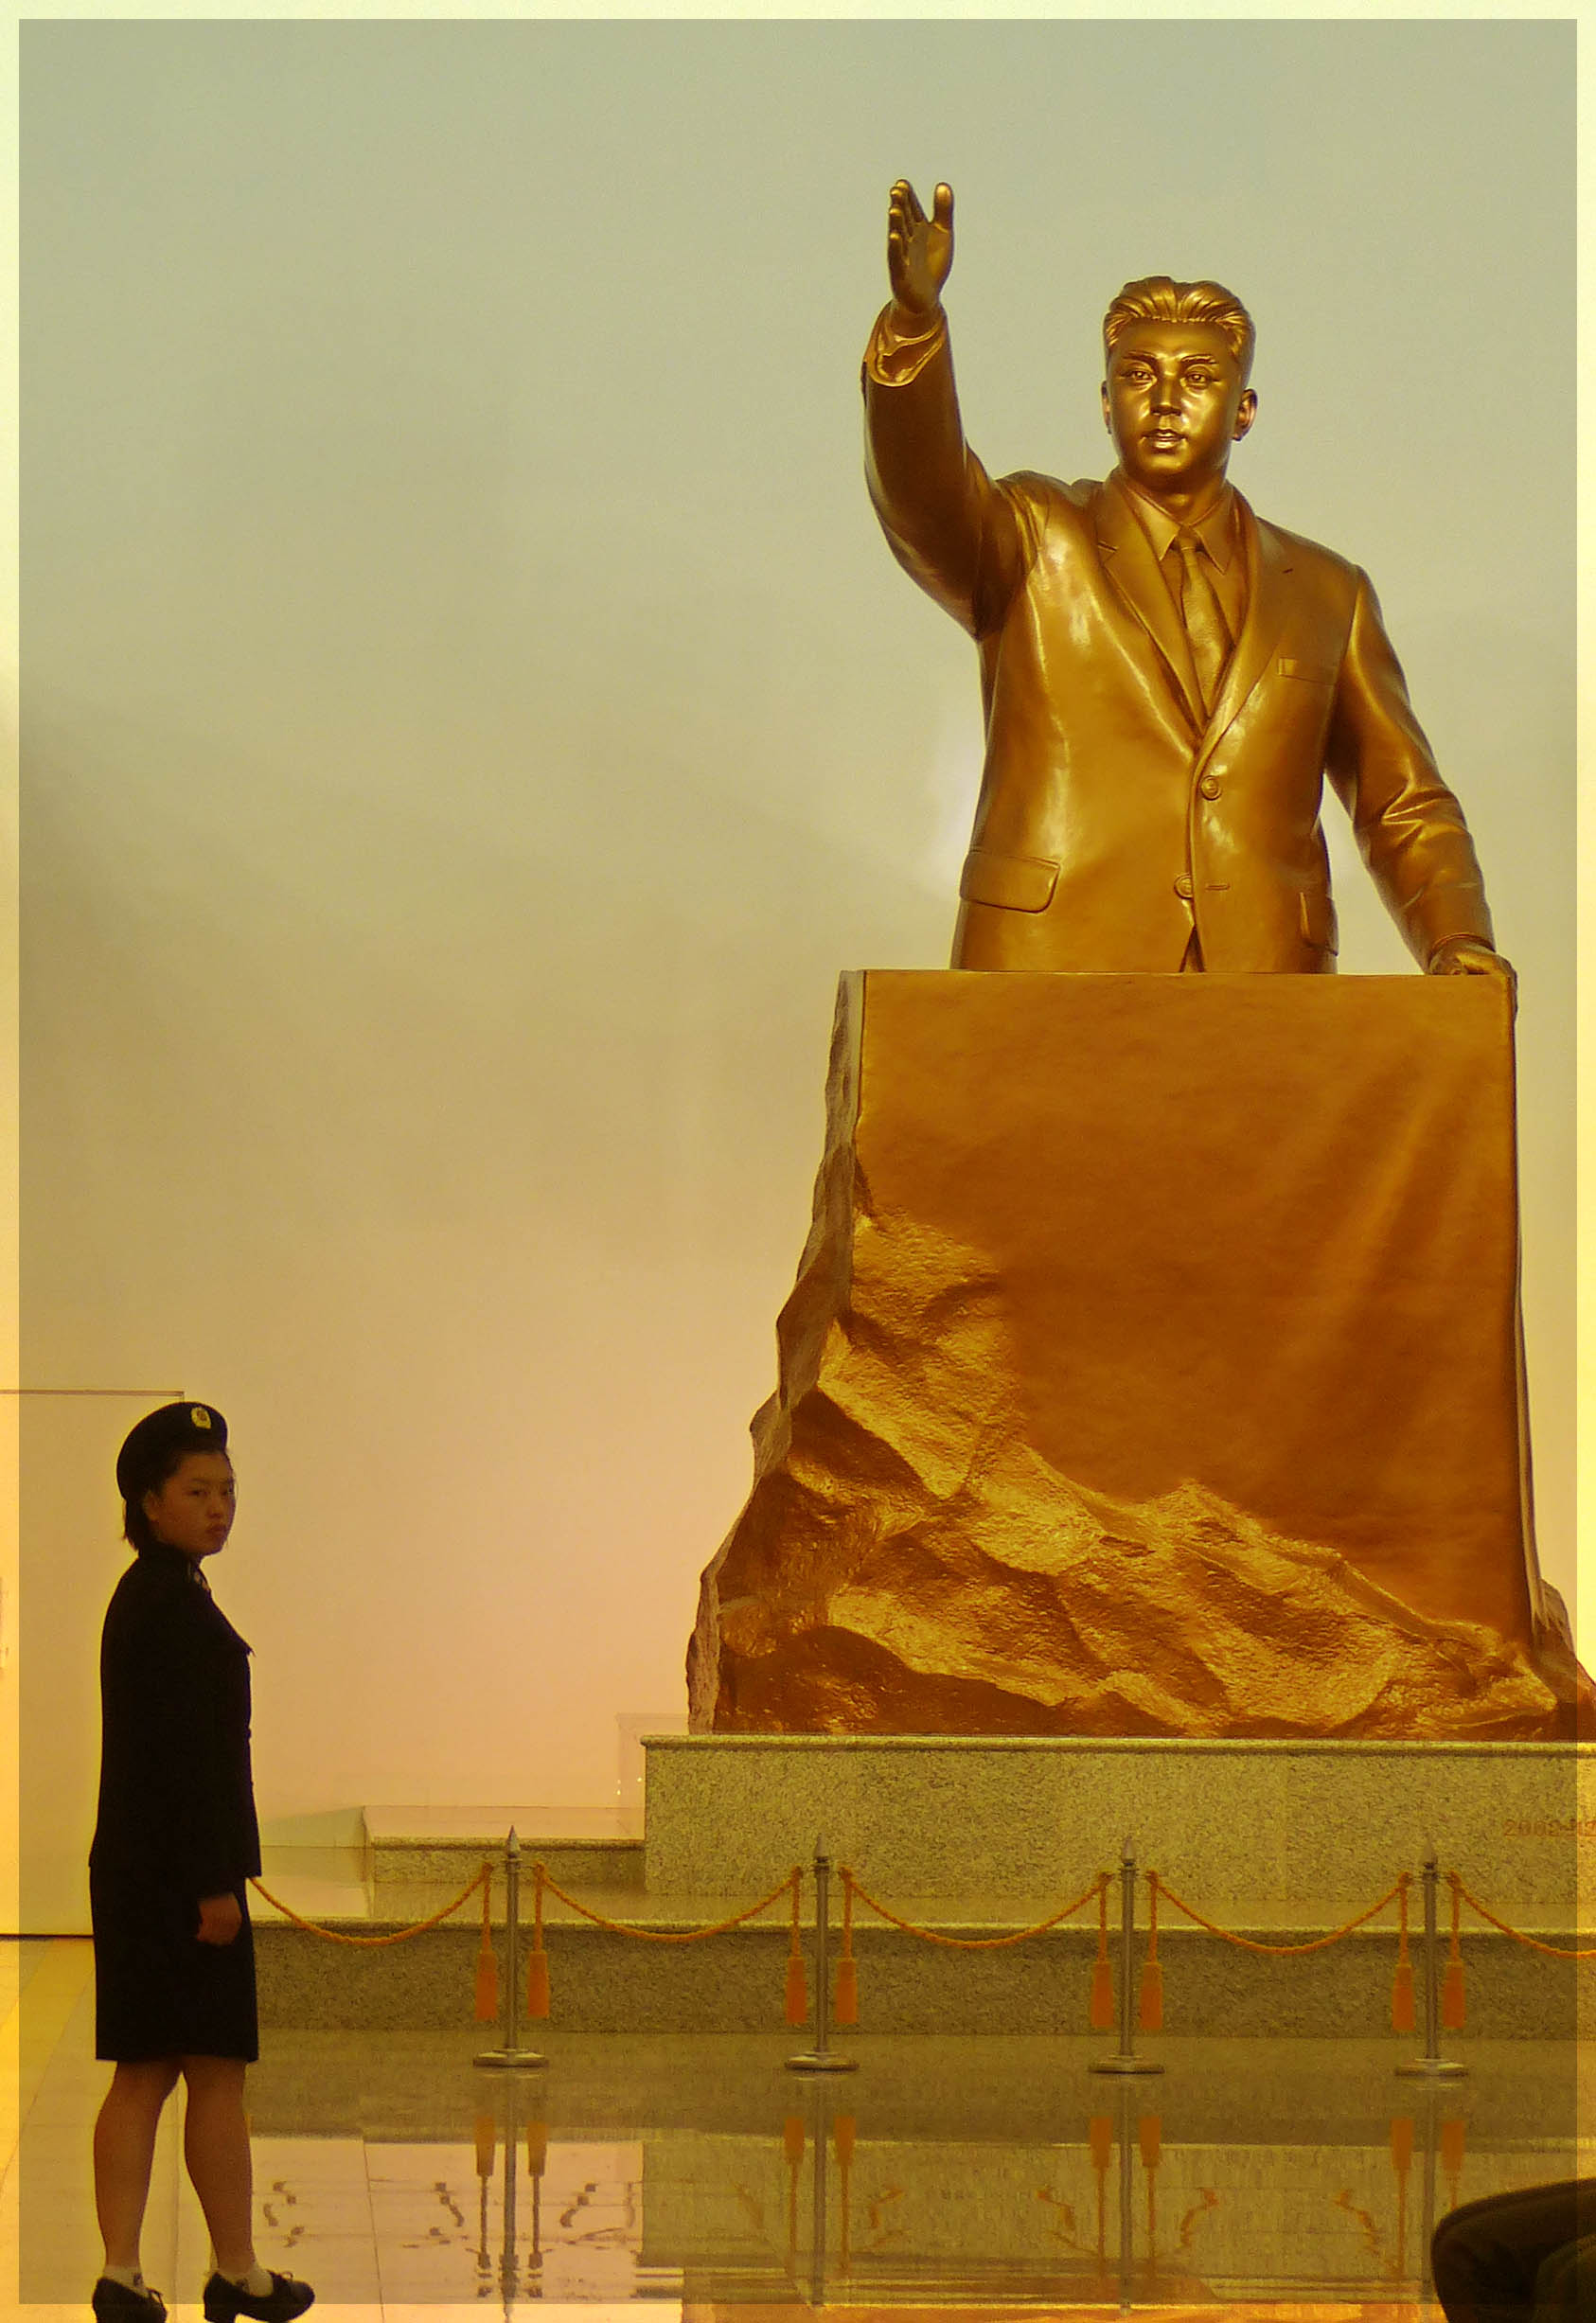 Huge gold statue of man at a podium and young lady in uniform in front